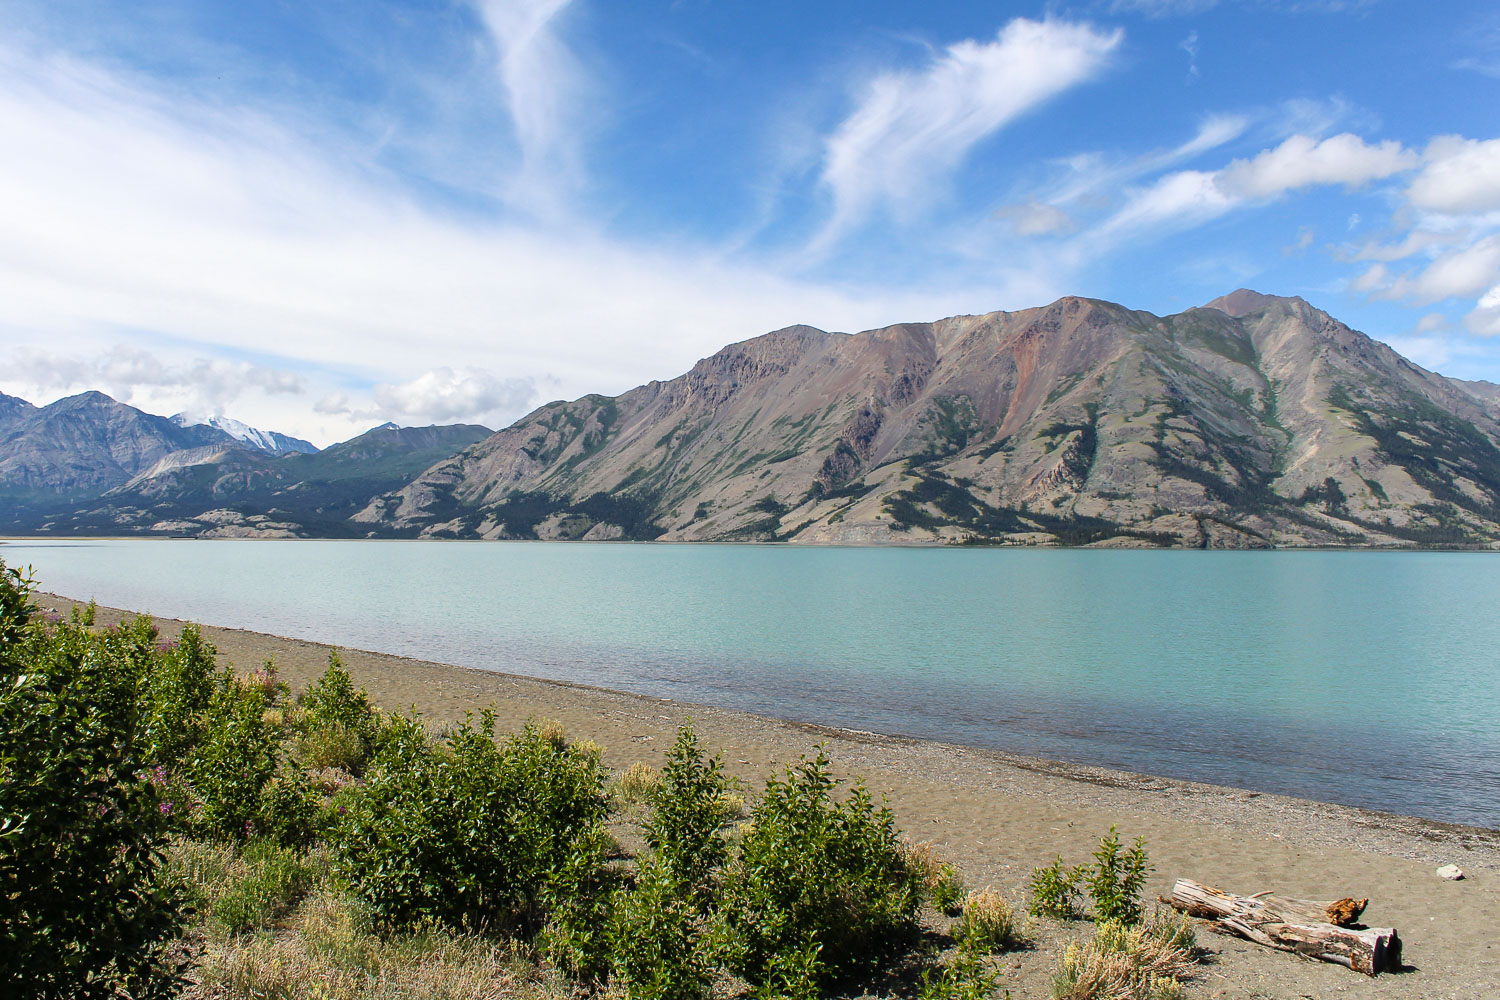 kluane_national_park.jpg